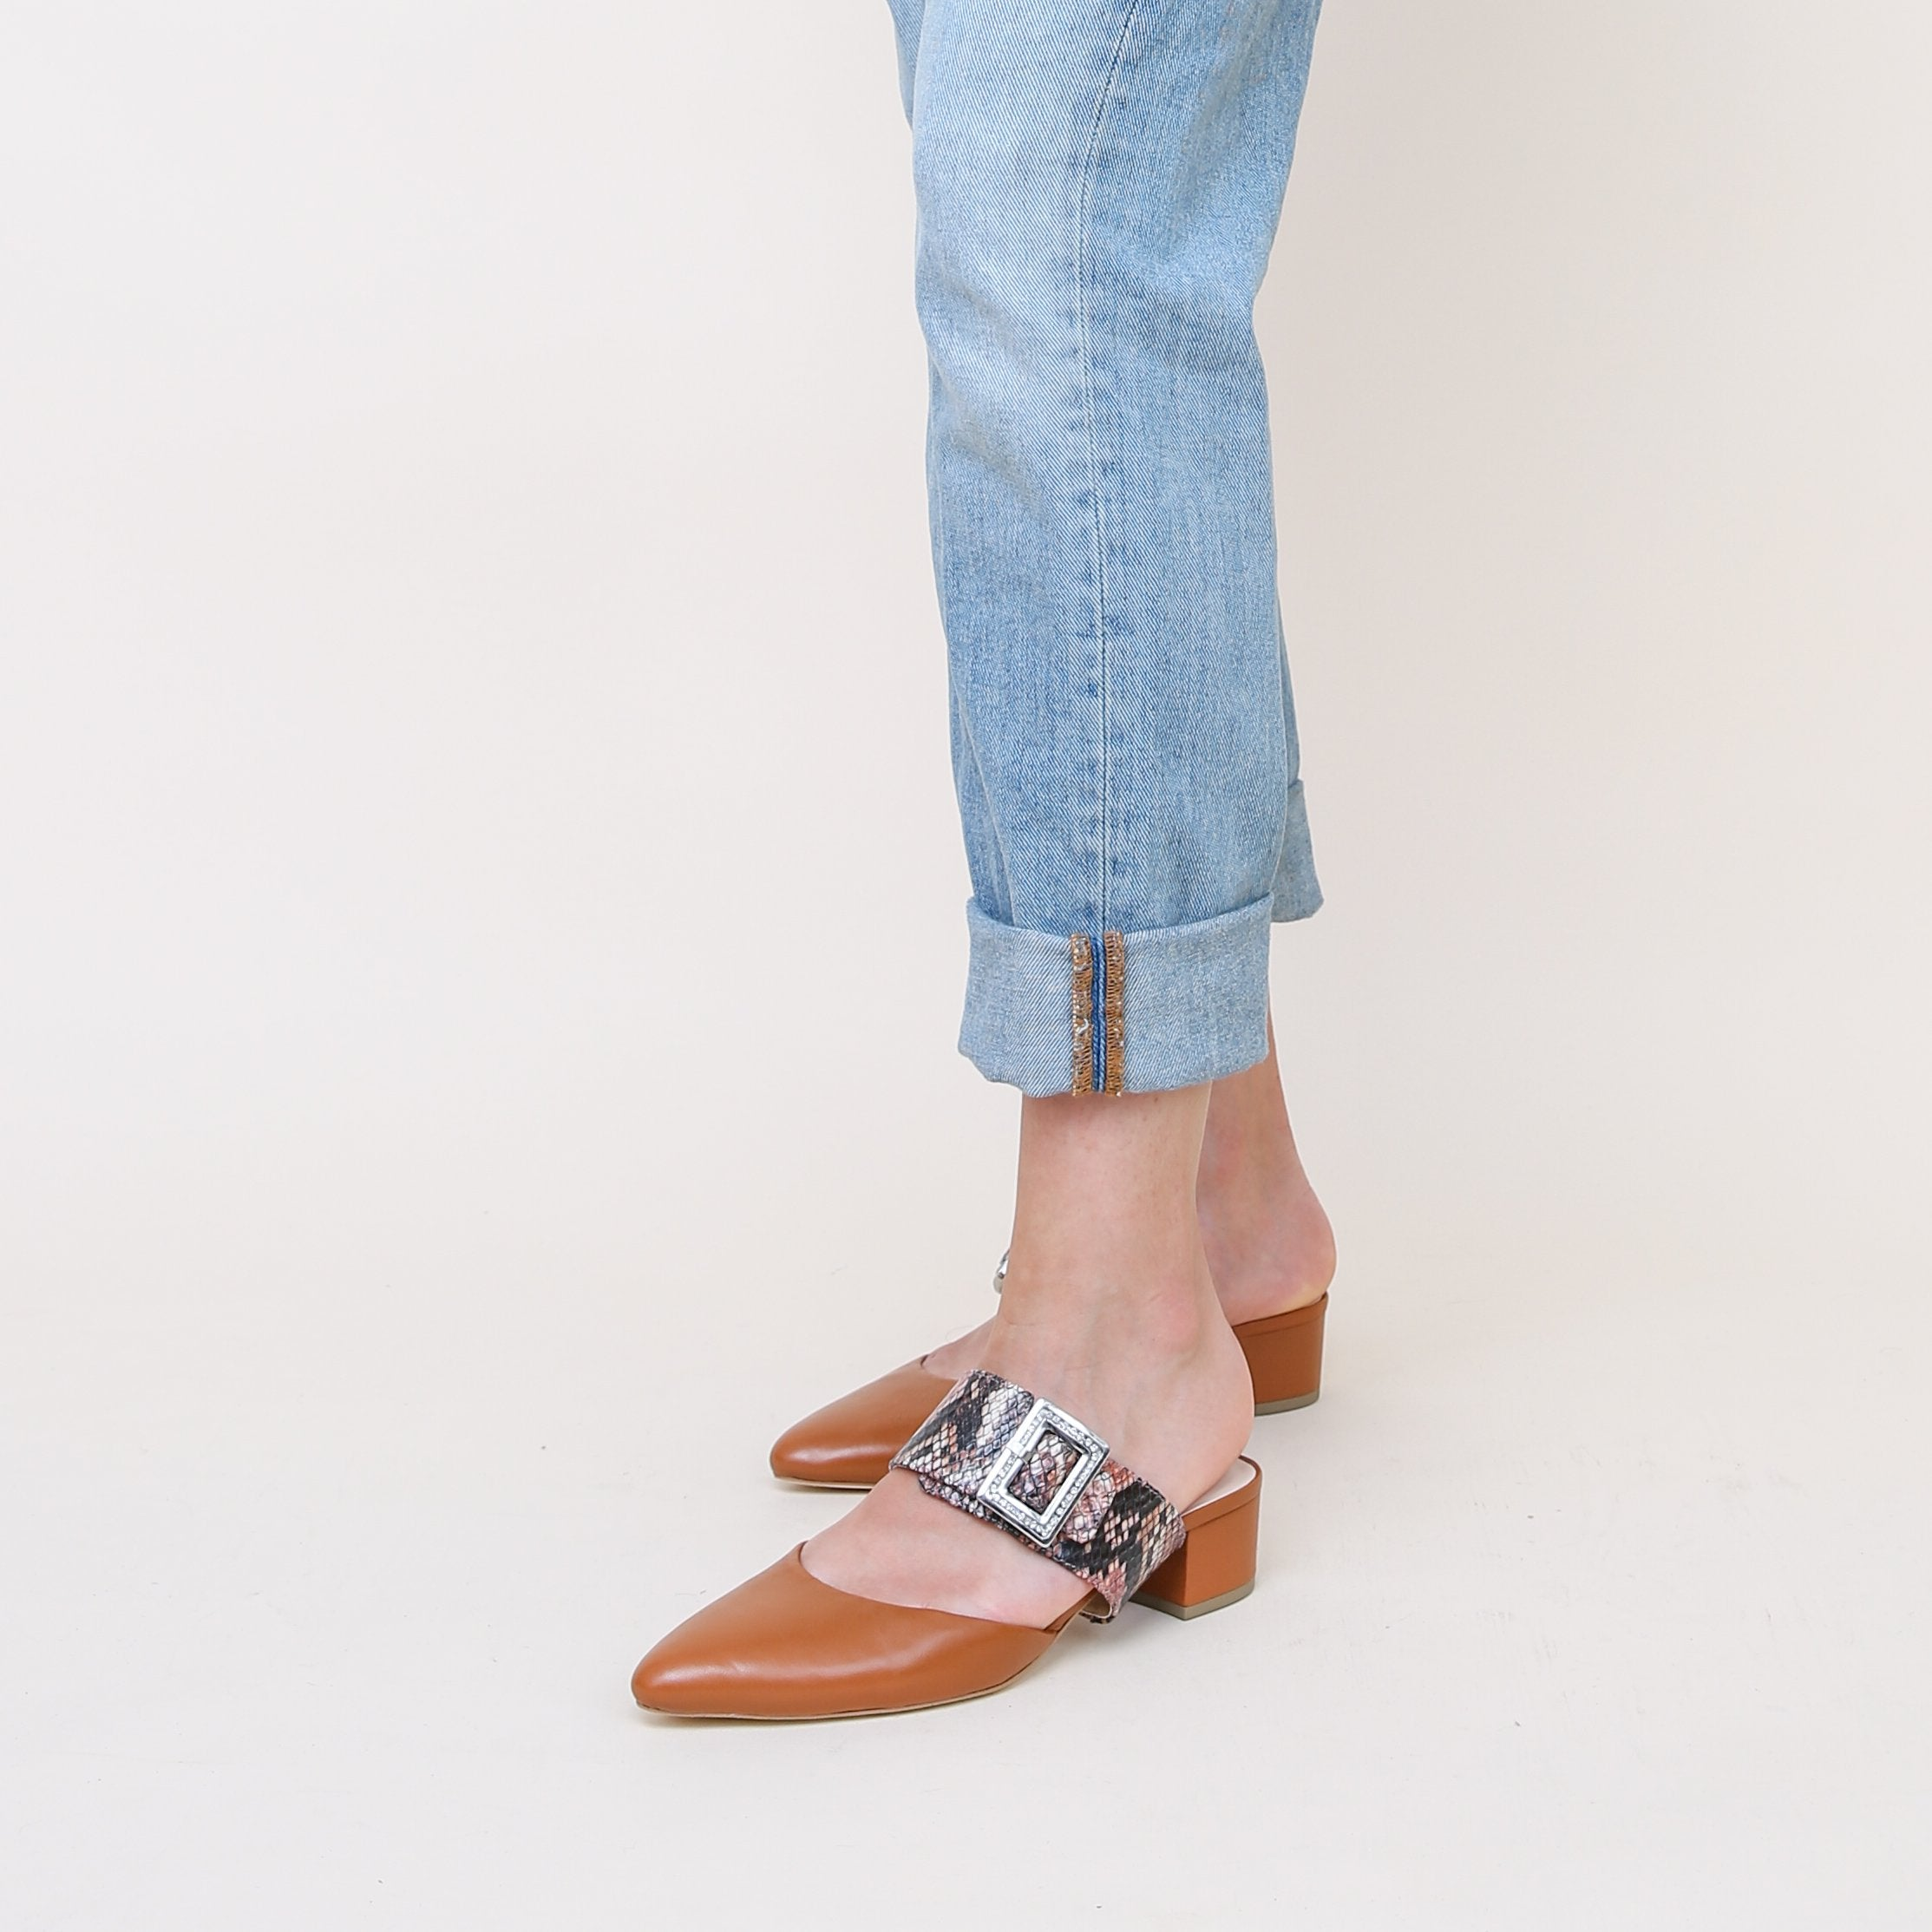 Cognac Slide + Rosy Boa Grace Personalized Womens Shoes | Alterre Create Your Own Slide - Sustainable Footwear Brand & Ethical Shoe Company